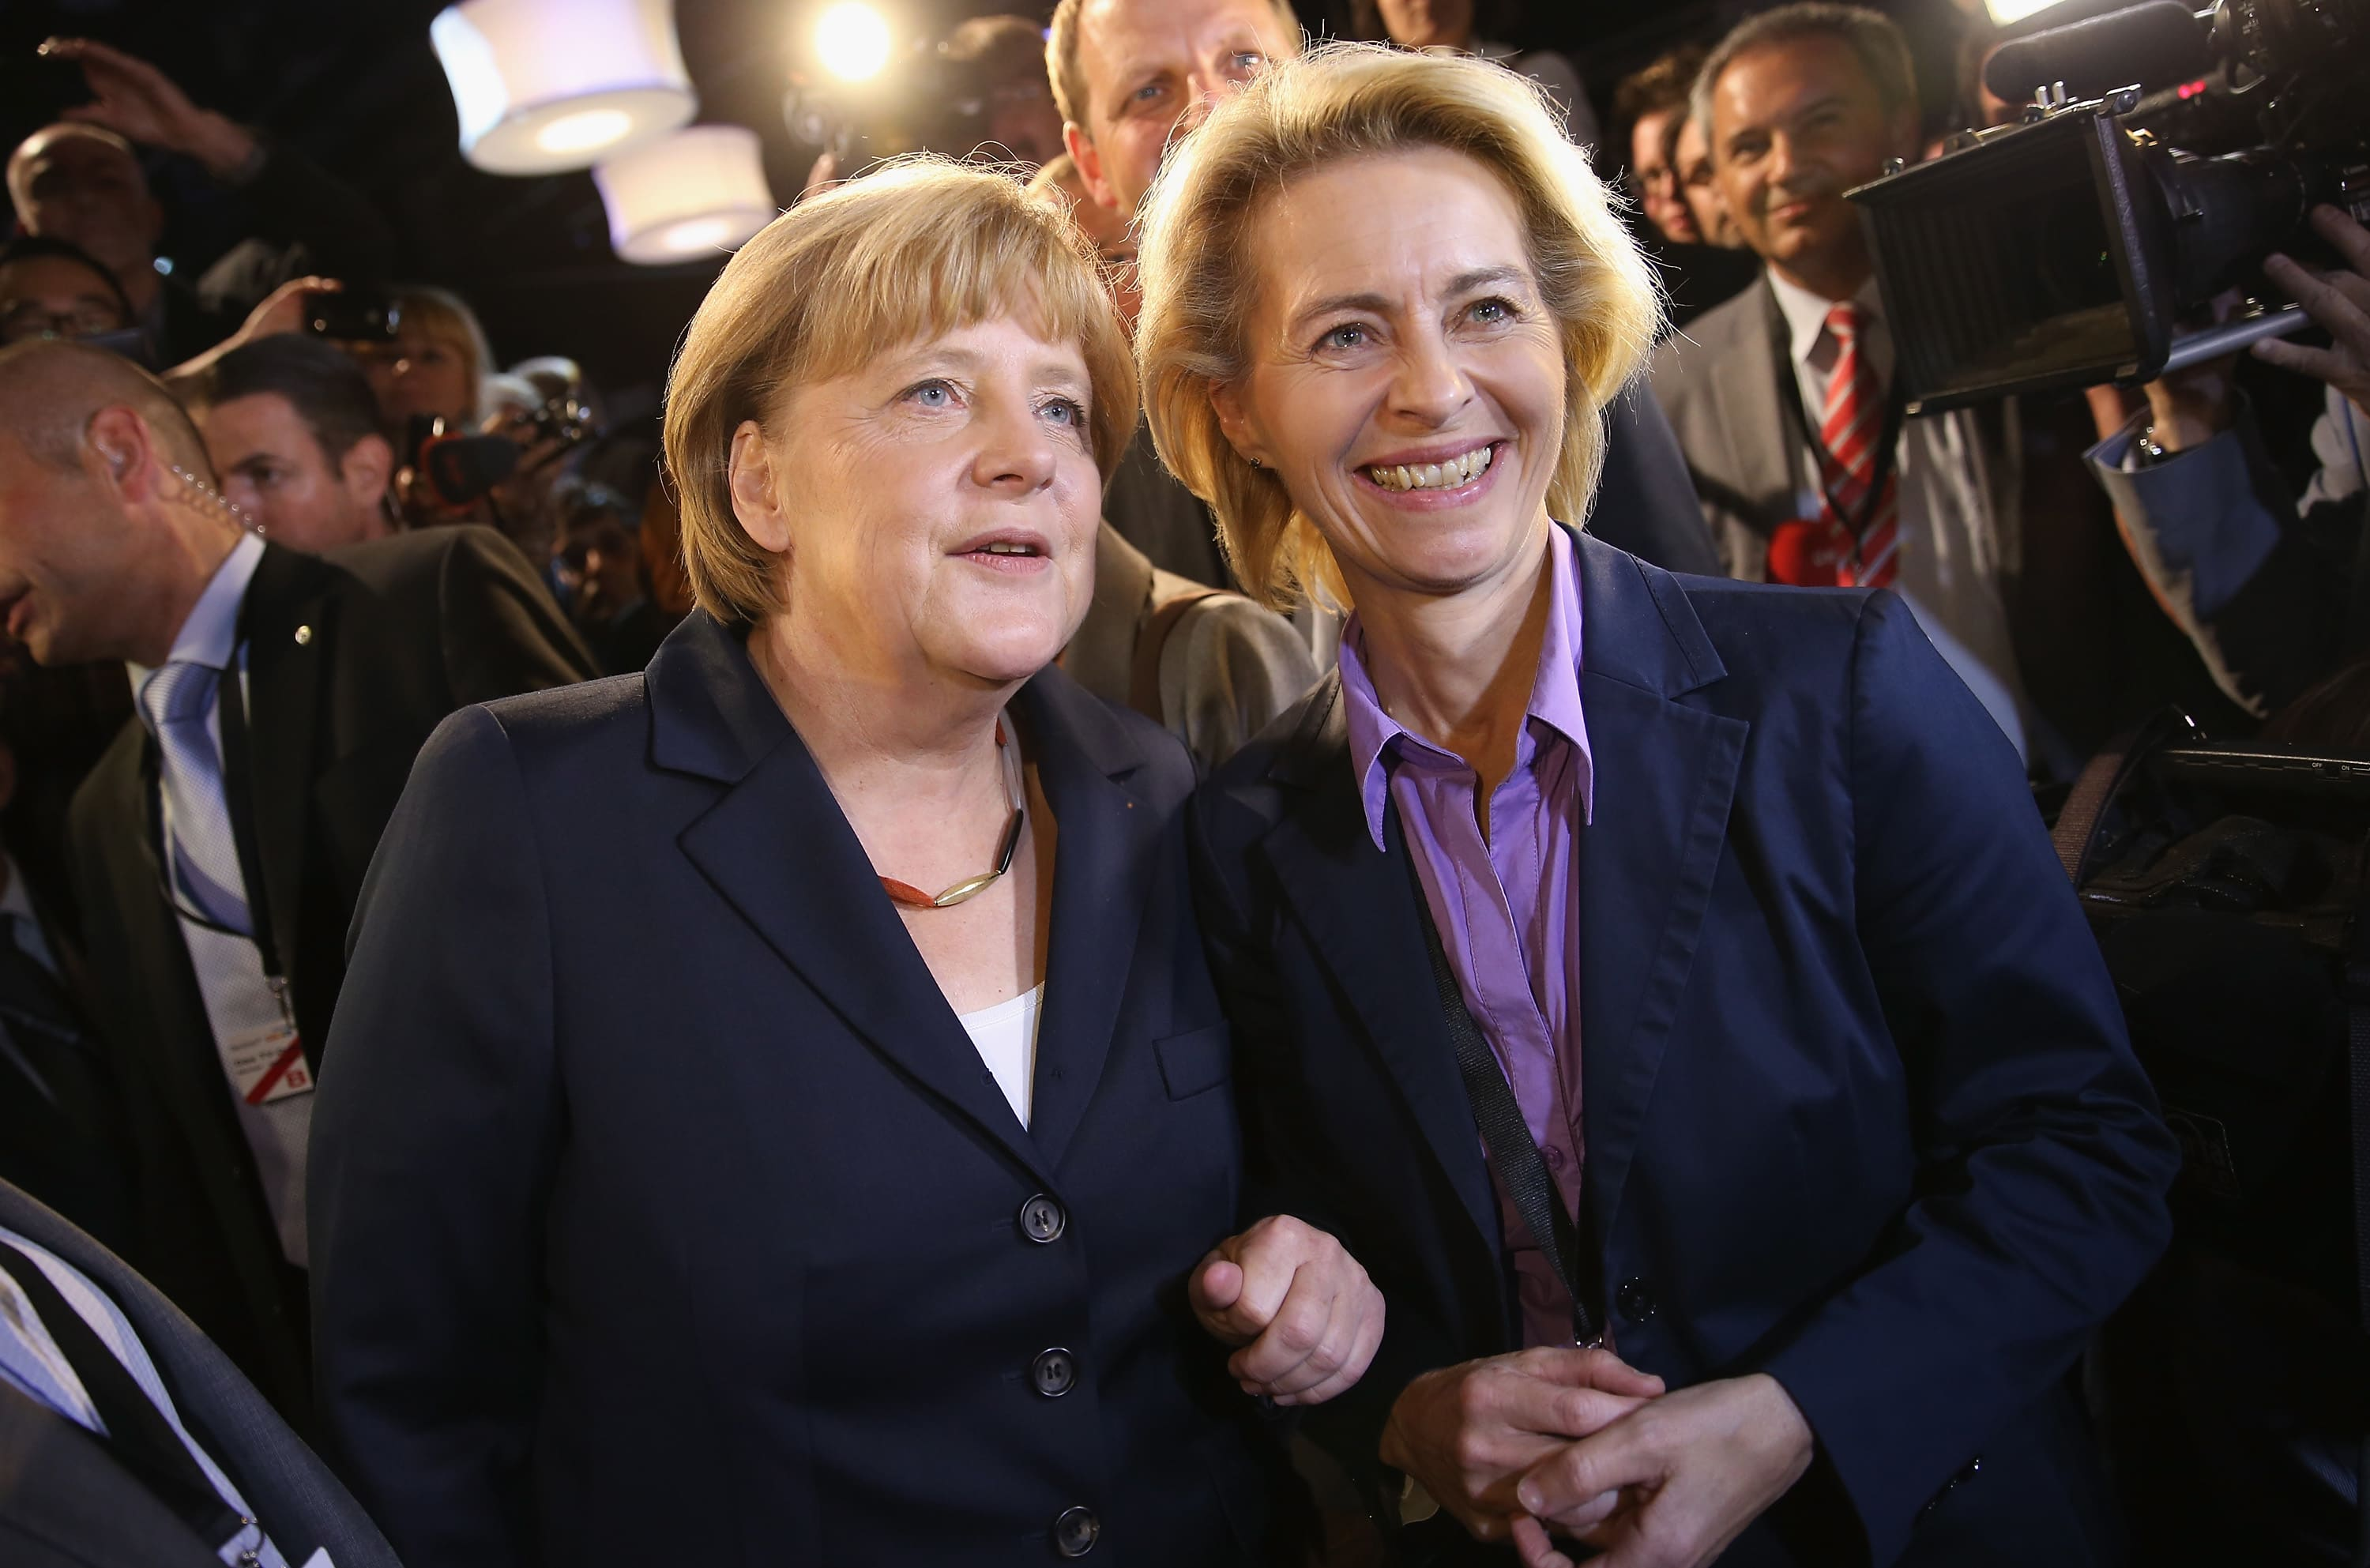 The Merkel ally nominated for the EU's top job is facing resistance